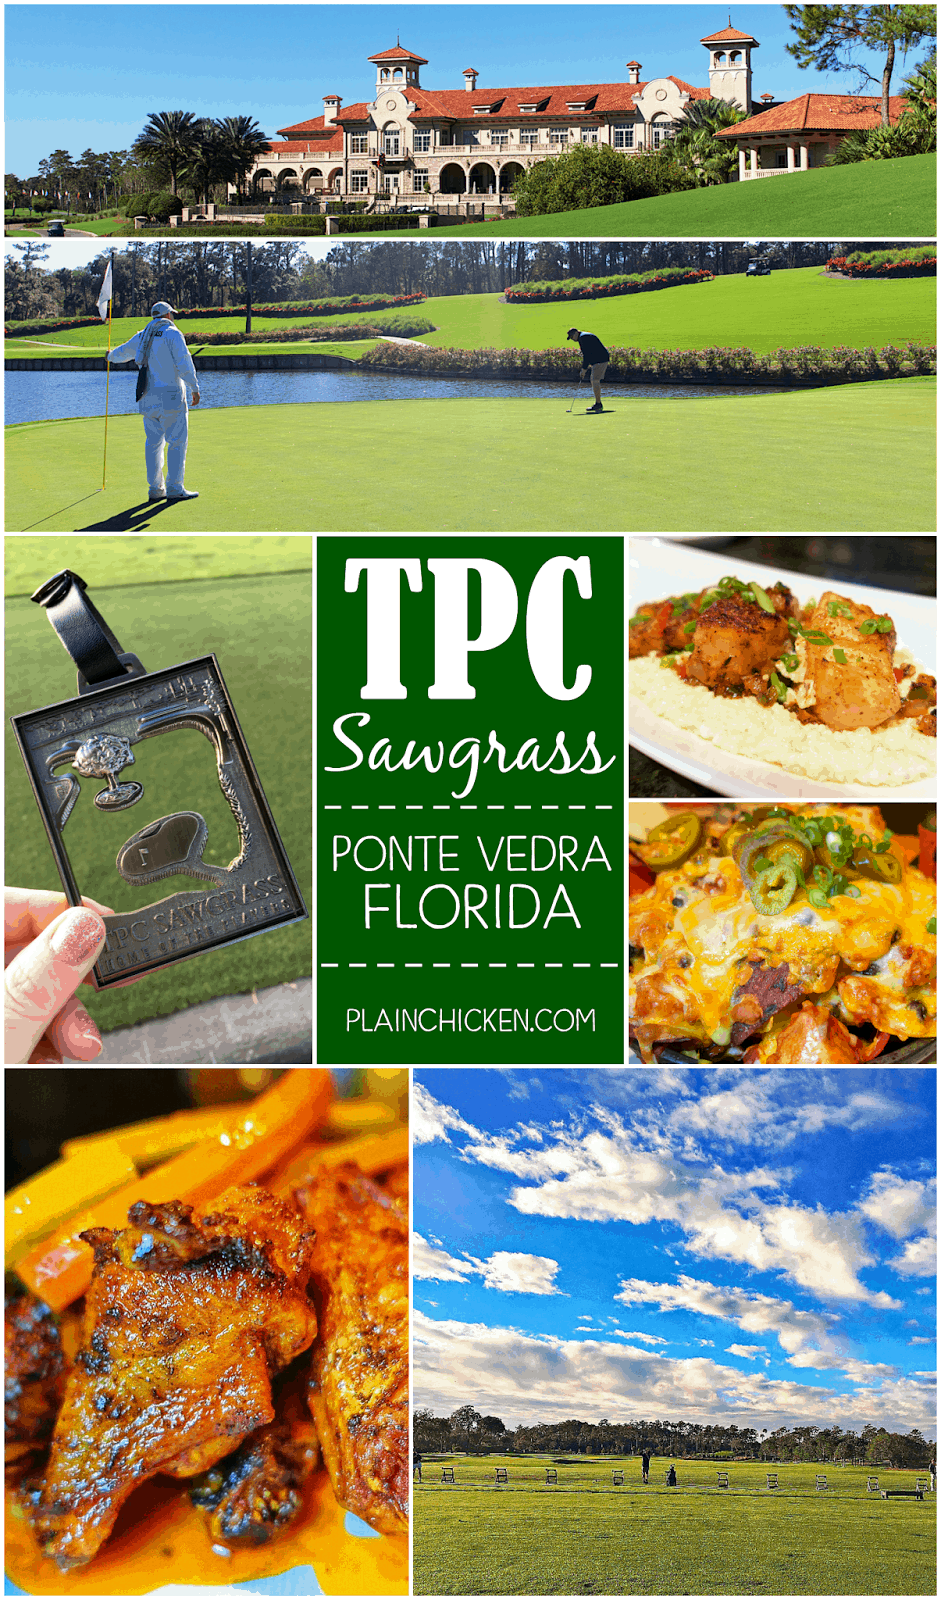 TPC Sawgrass in Ponte Vedra, FL - play the Stadium course and dine in the clubhouse at Nineteen. The food at Nineteen was AMAZING! Great golf course and great food! A fun time!